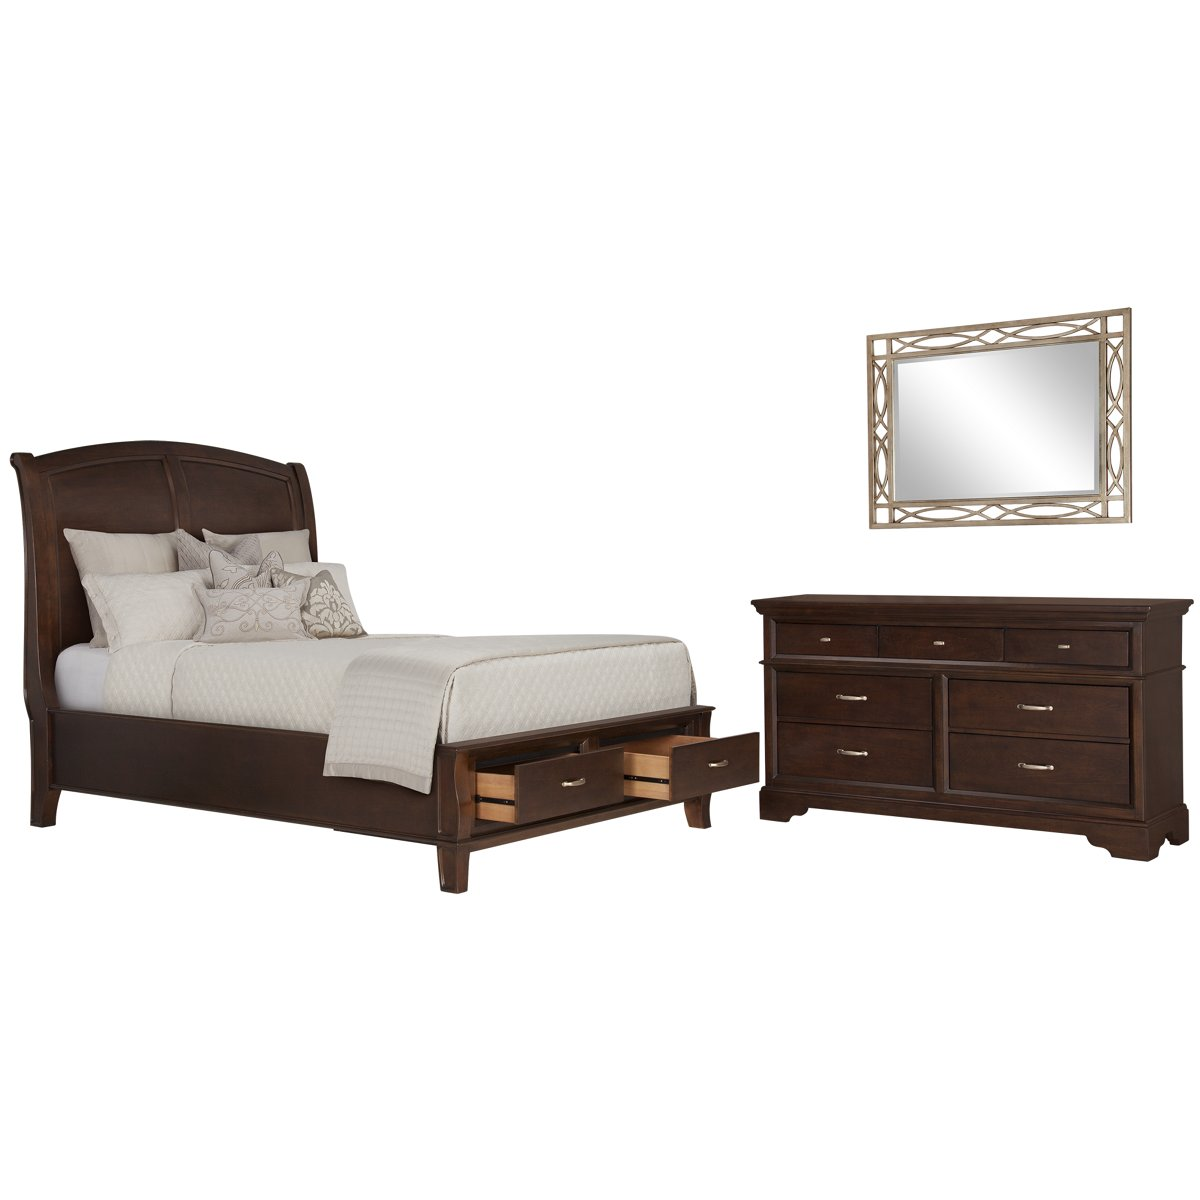 Marvelous photograph of City Furniture: Canyon Mid Tone Wood Platform Storage Bedroom with #8C613F color and 1200x1200 pixels